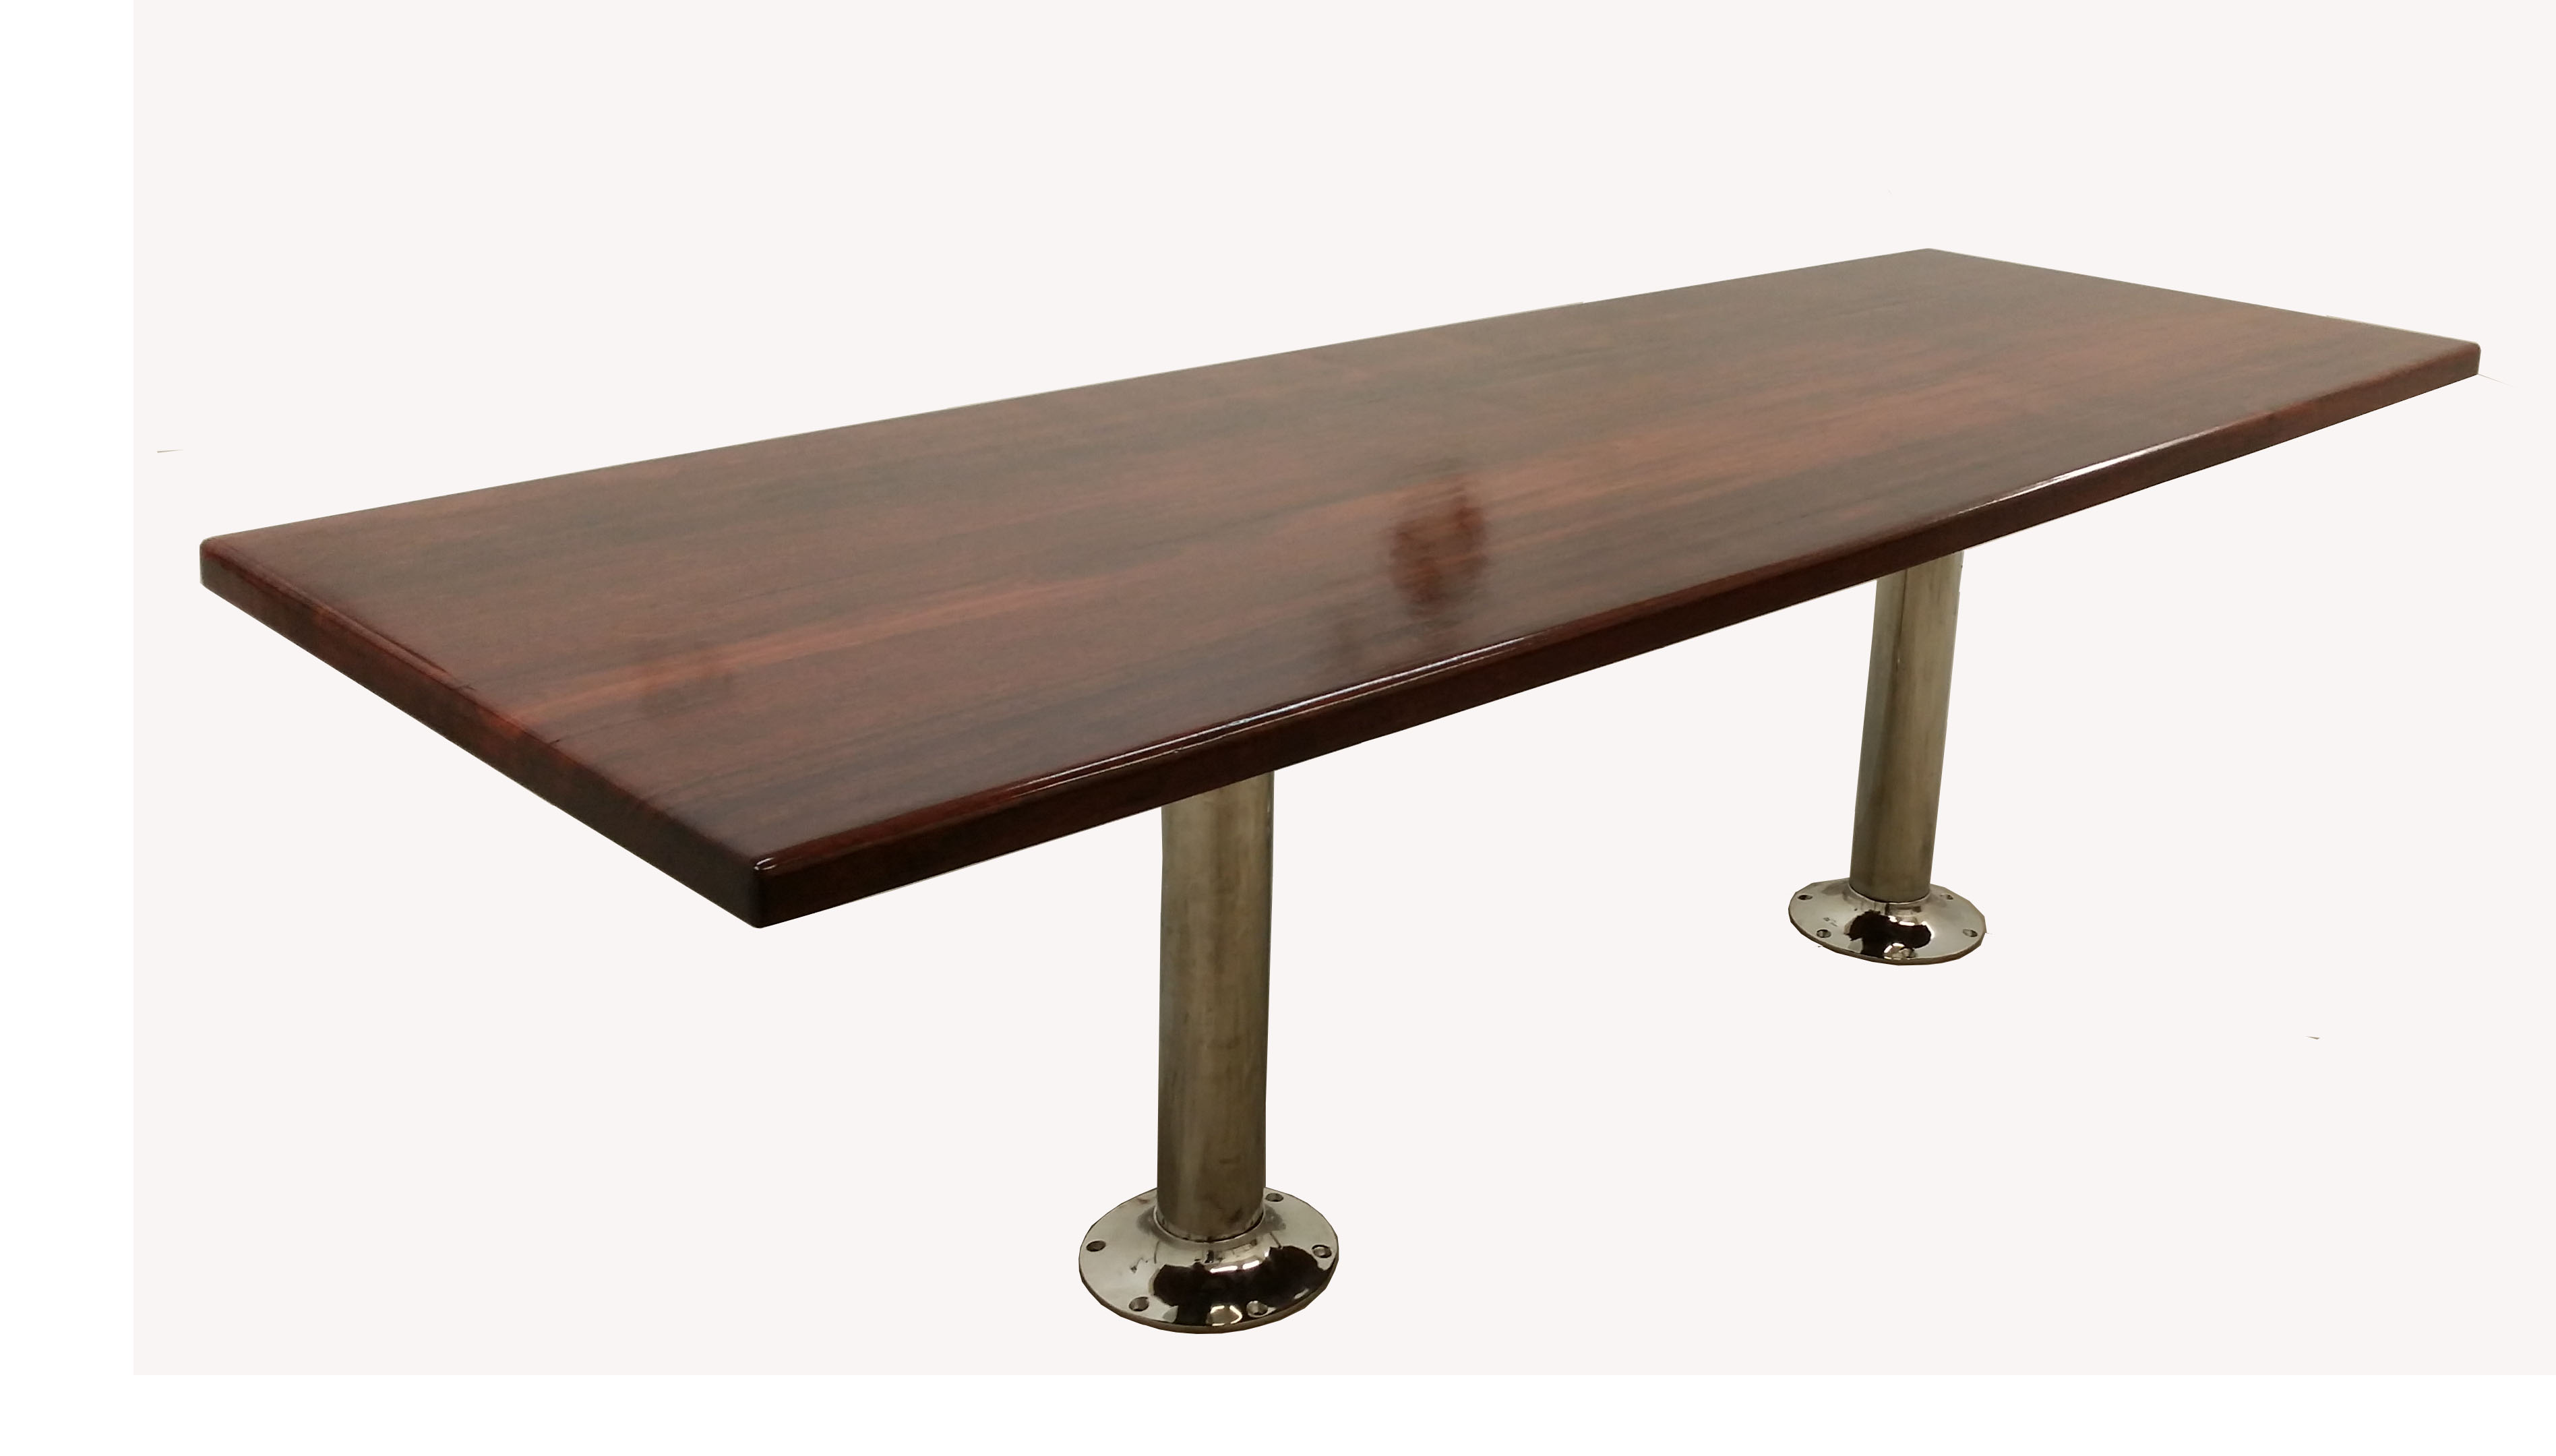 plough top at cadsden ikea steel stainless table beneficial the review